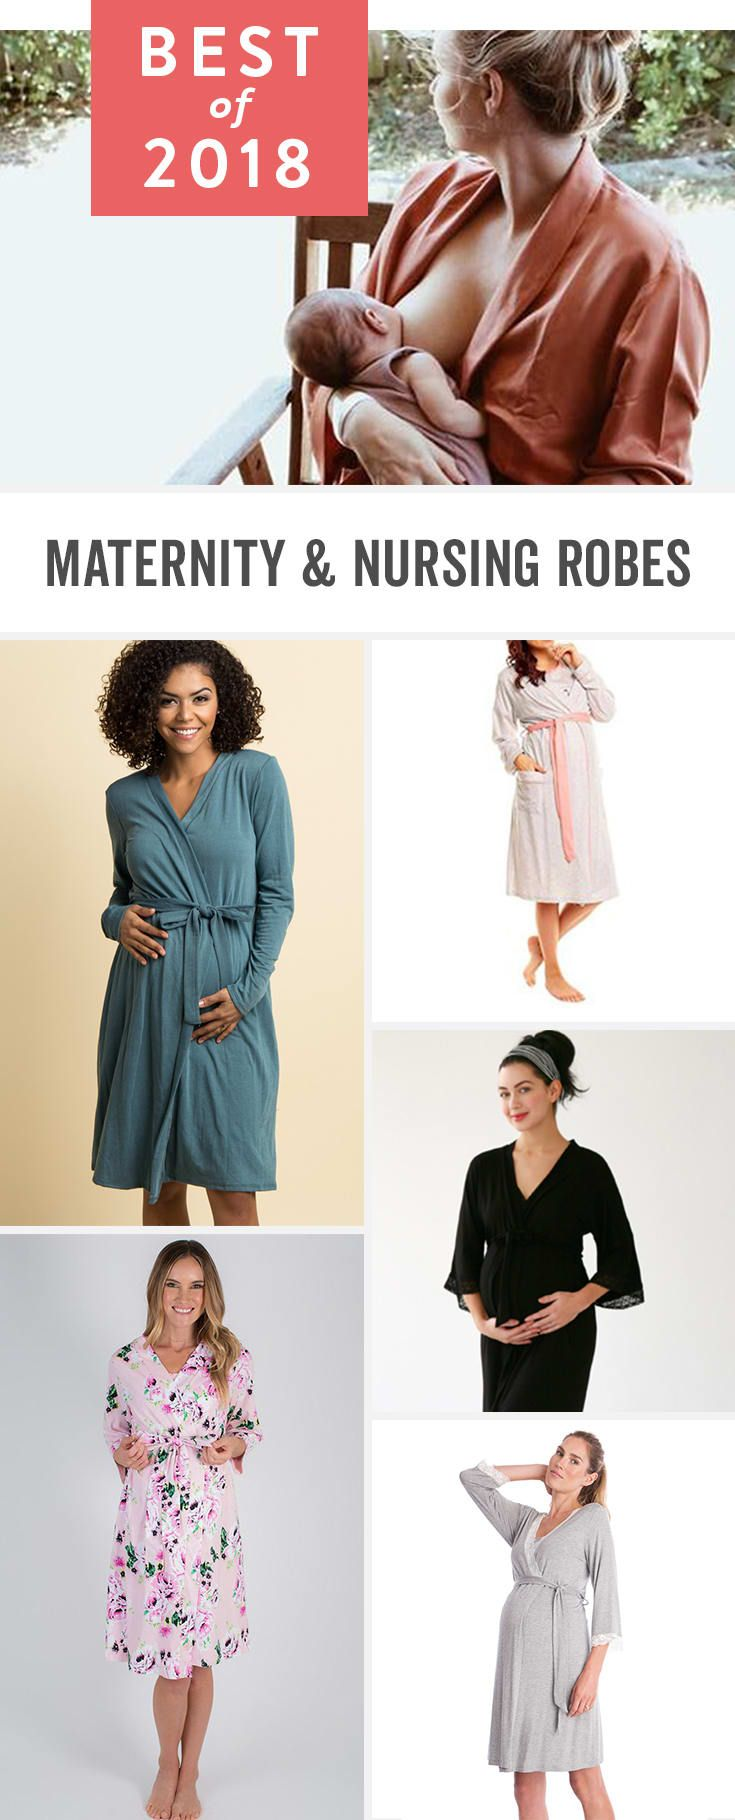 d8f0381905 These are the best maternity and nursing robes that make perfect delivery  gowns for labor and beyond that work night and day. Floral